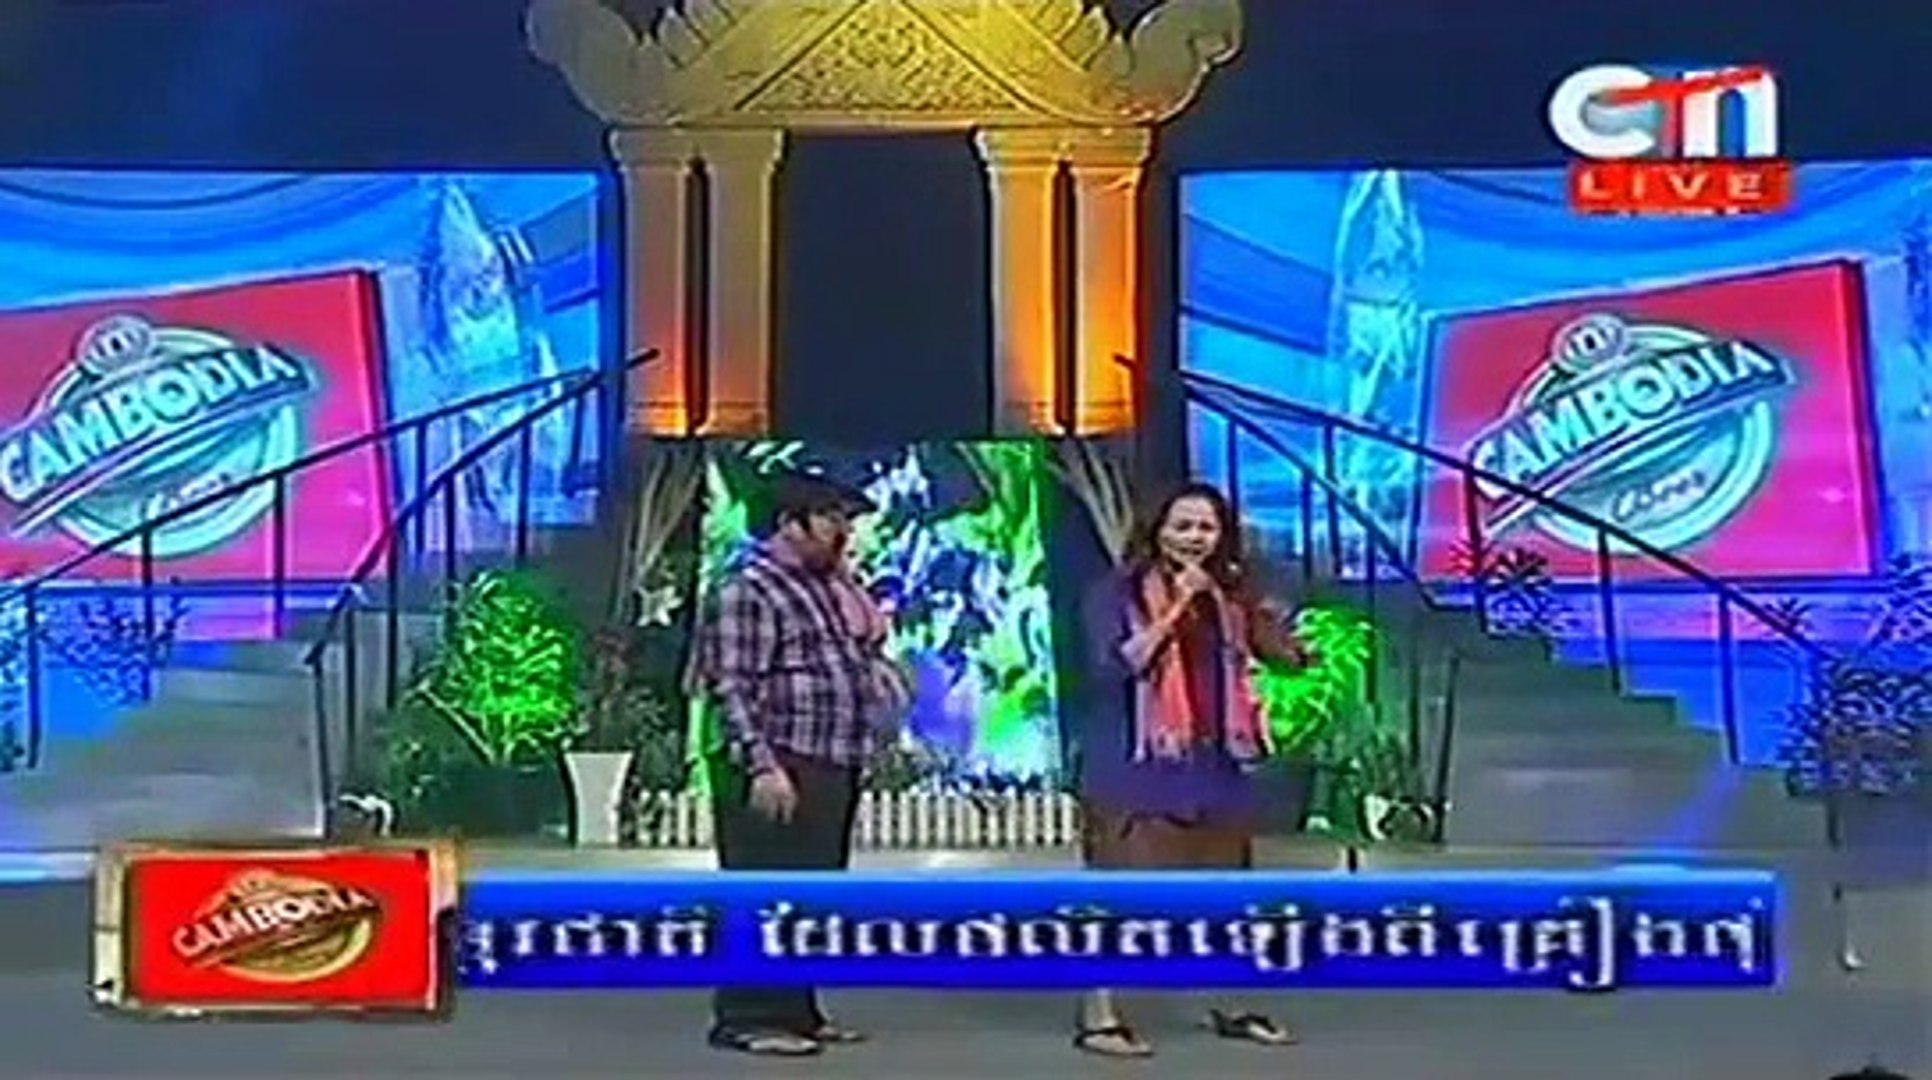 Khmer Comedy Today 2014 ▶ Cambodia TV show ▶ CTN Comedy Klach Os Hus on 25 Oct 2014